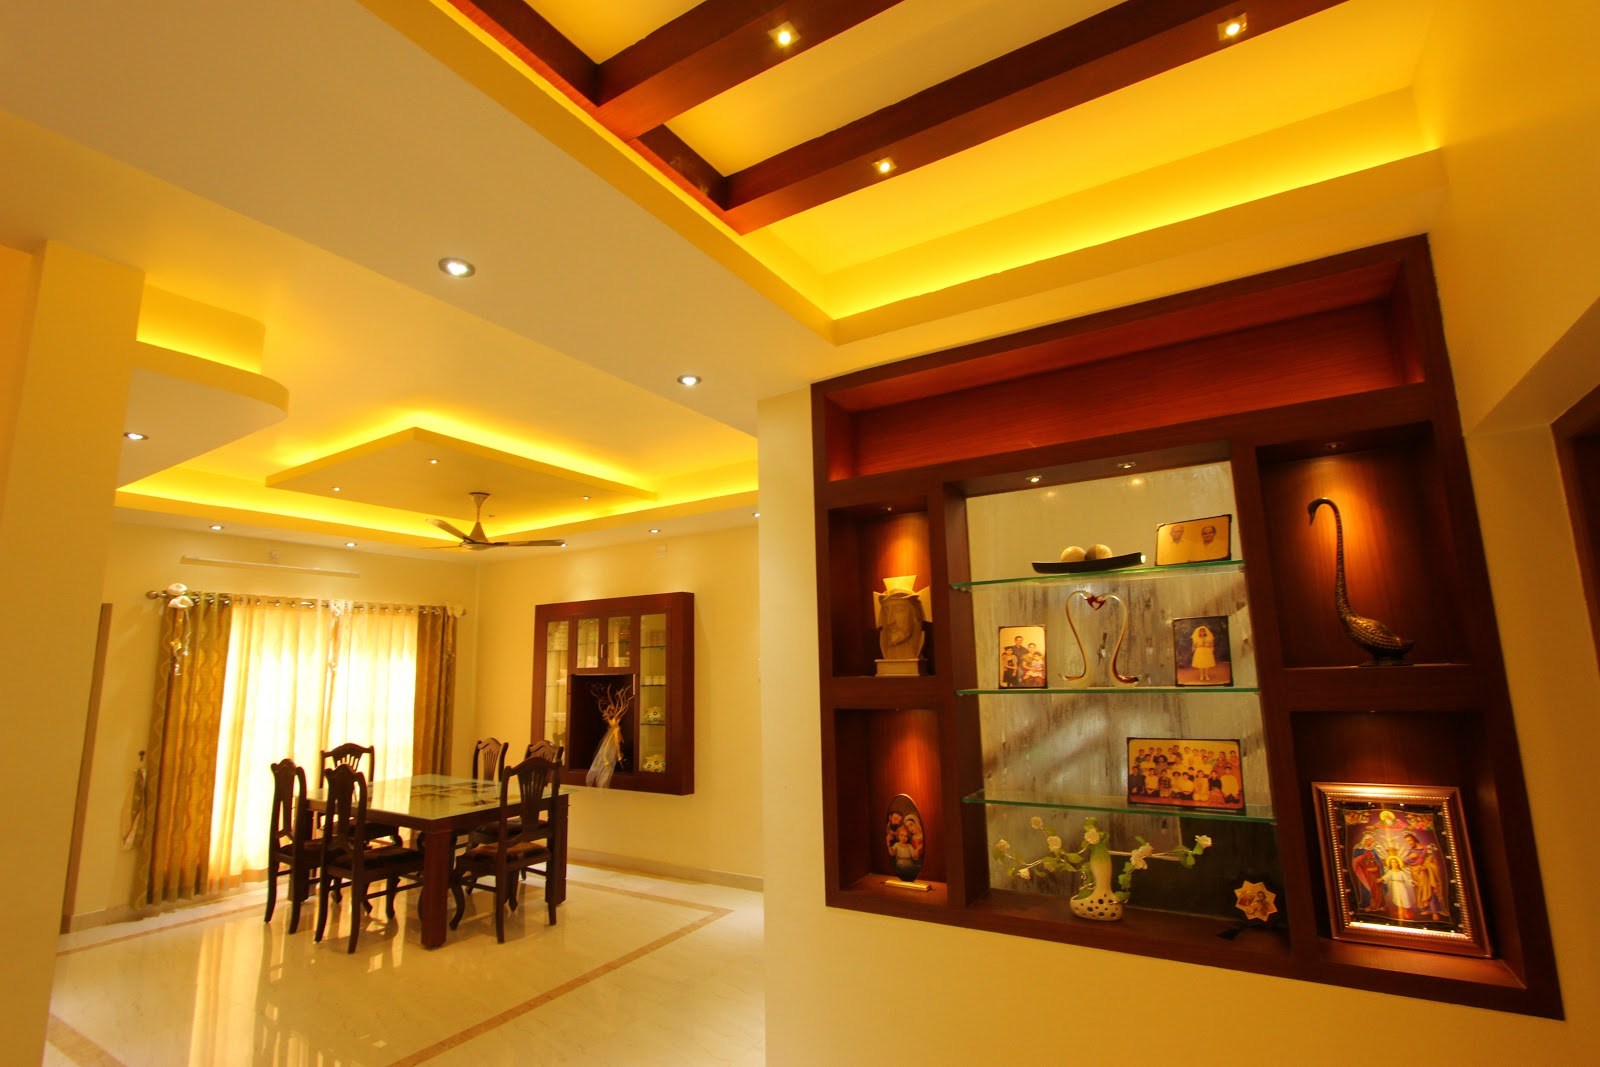 Shilpakala interiors award winning home interior design for Interior designs com